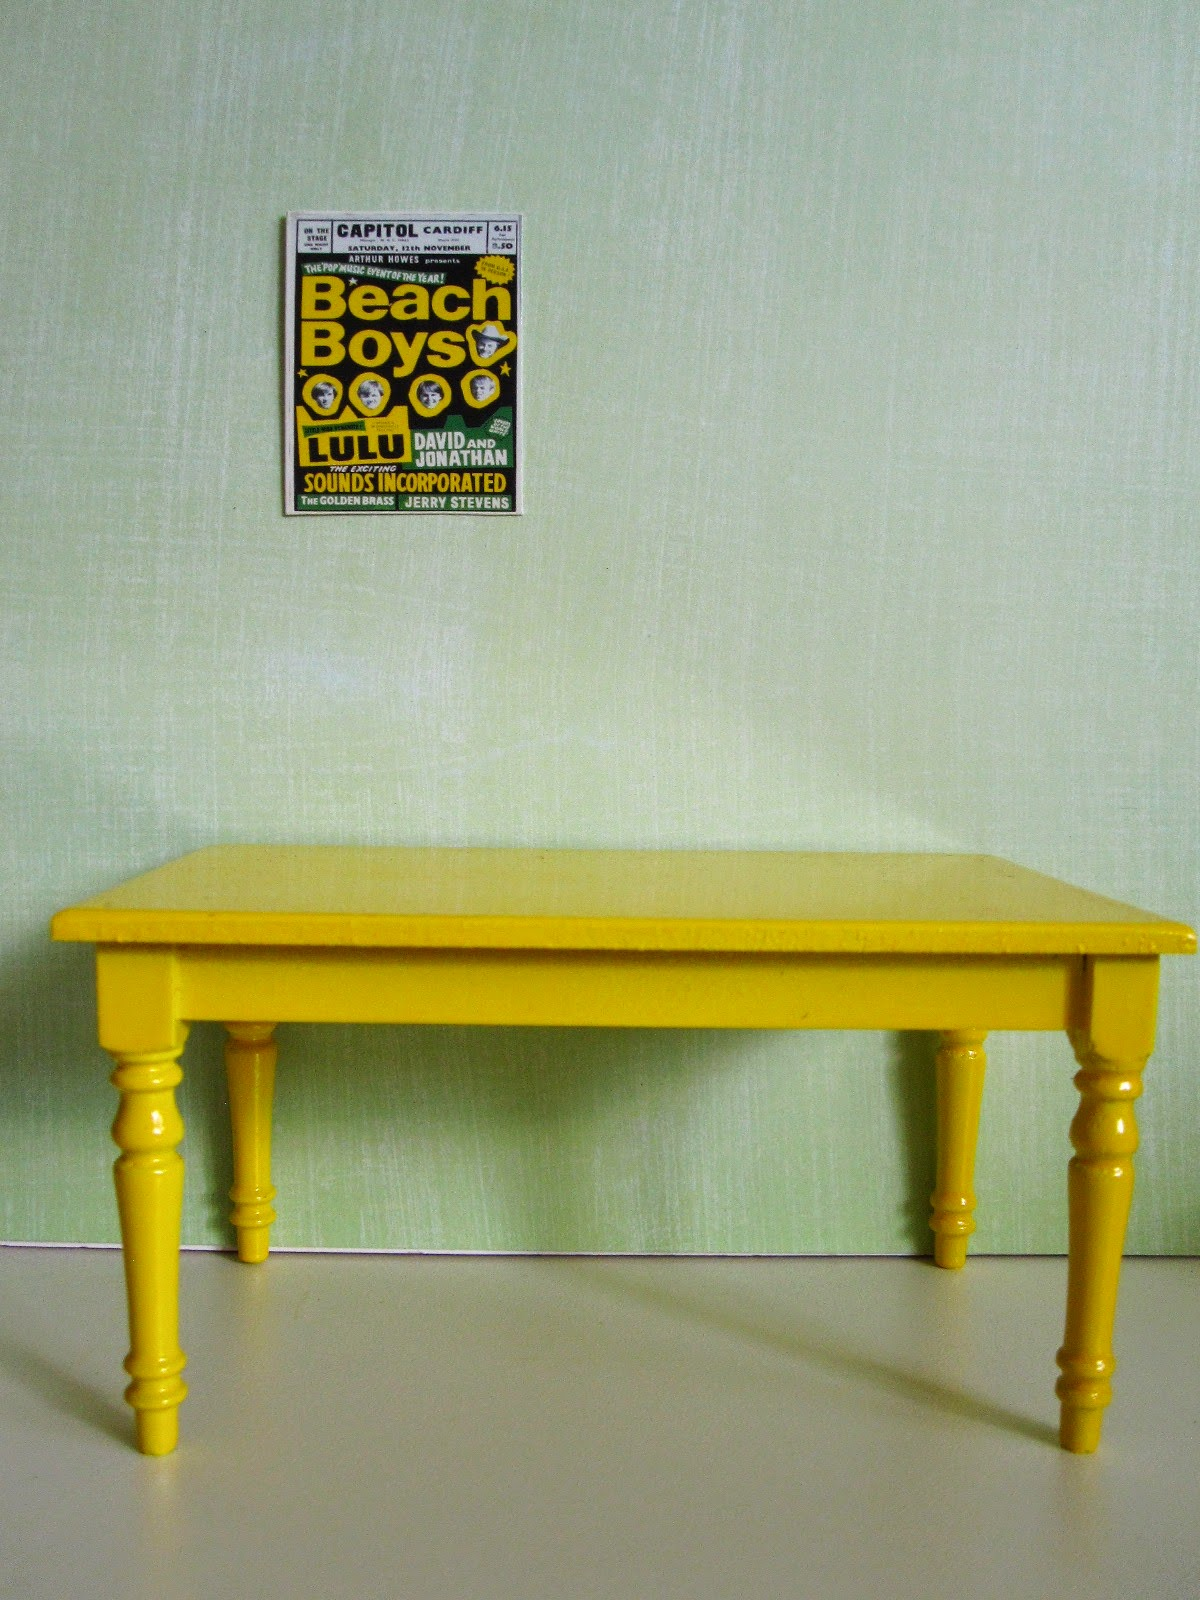 Bright 1960s Beach Boys poster on a green wall with a modern dolls' house miniature yellow table underneath,